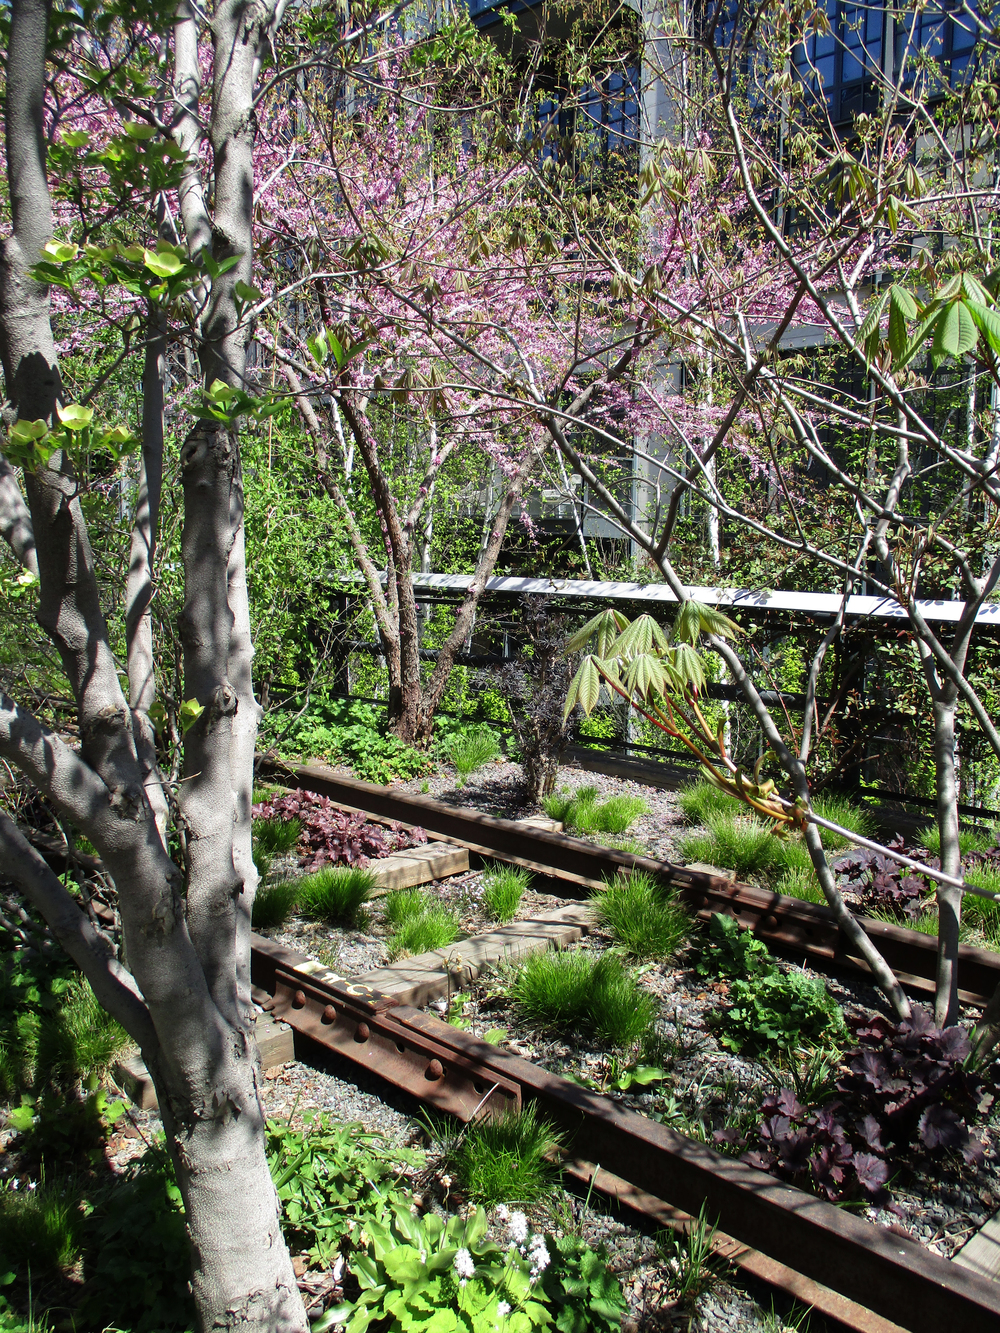 The High Line with all the Spring blossoms.